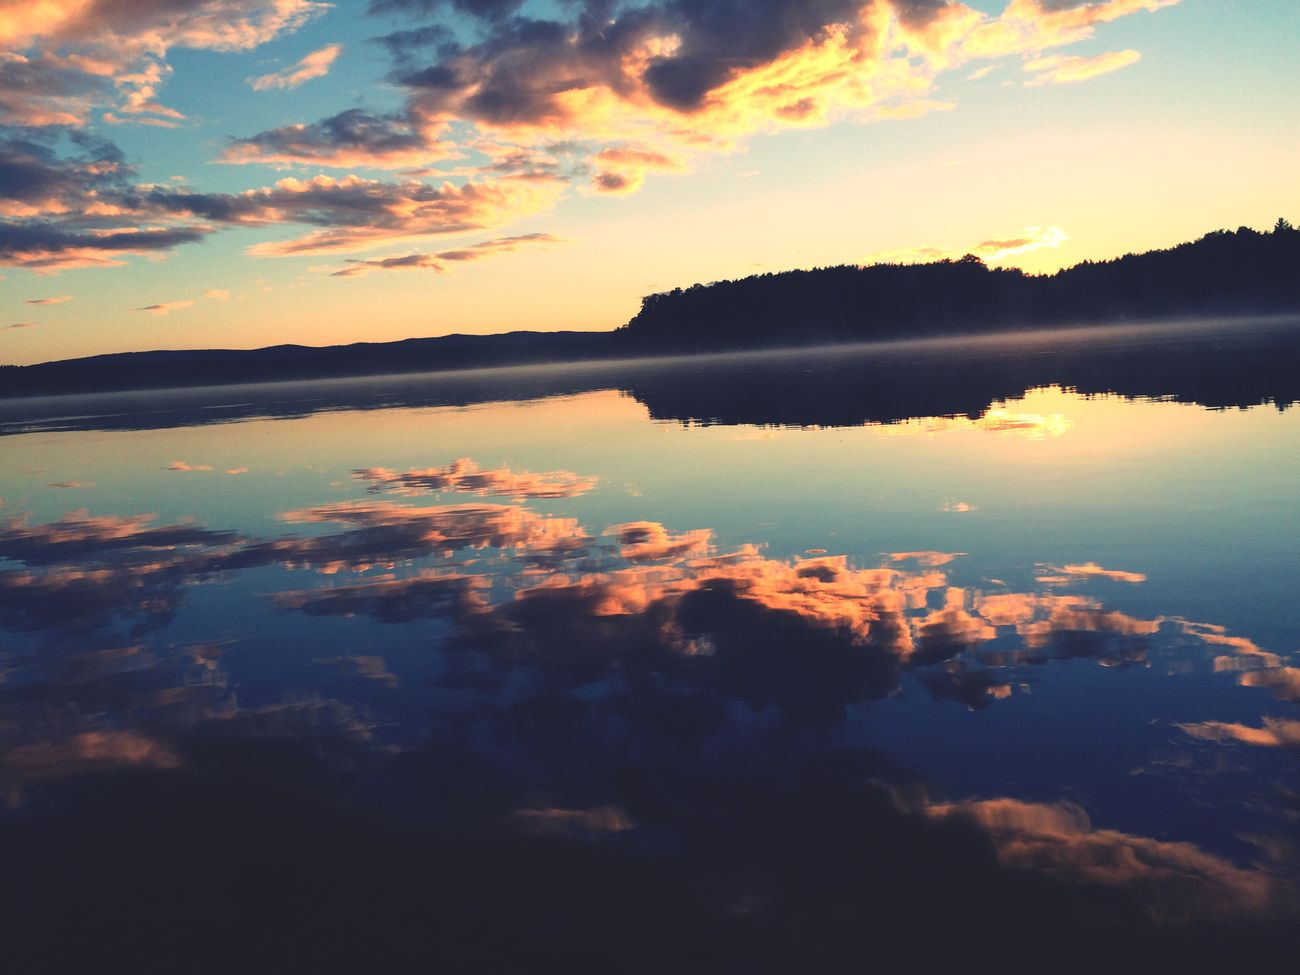 Sunset Scenics Tranquil Scene Reflection Beauty In Nature Tranquility Water Lake Idyllic Majestic Cloudscape Sky Cloud - Sky Orange Color Nature Awe Cloud Romantic Sky Calm Dramatic Sky